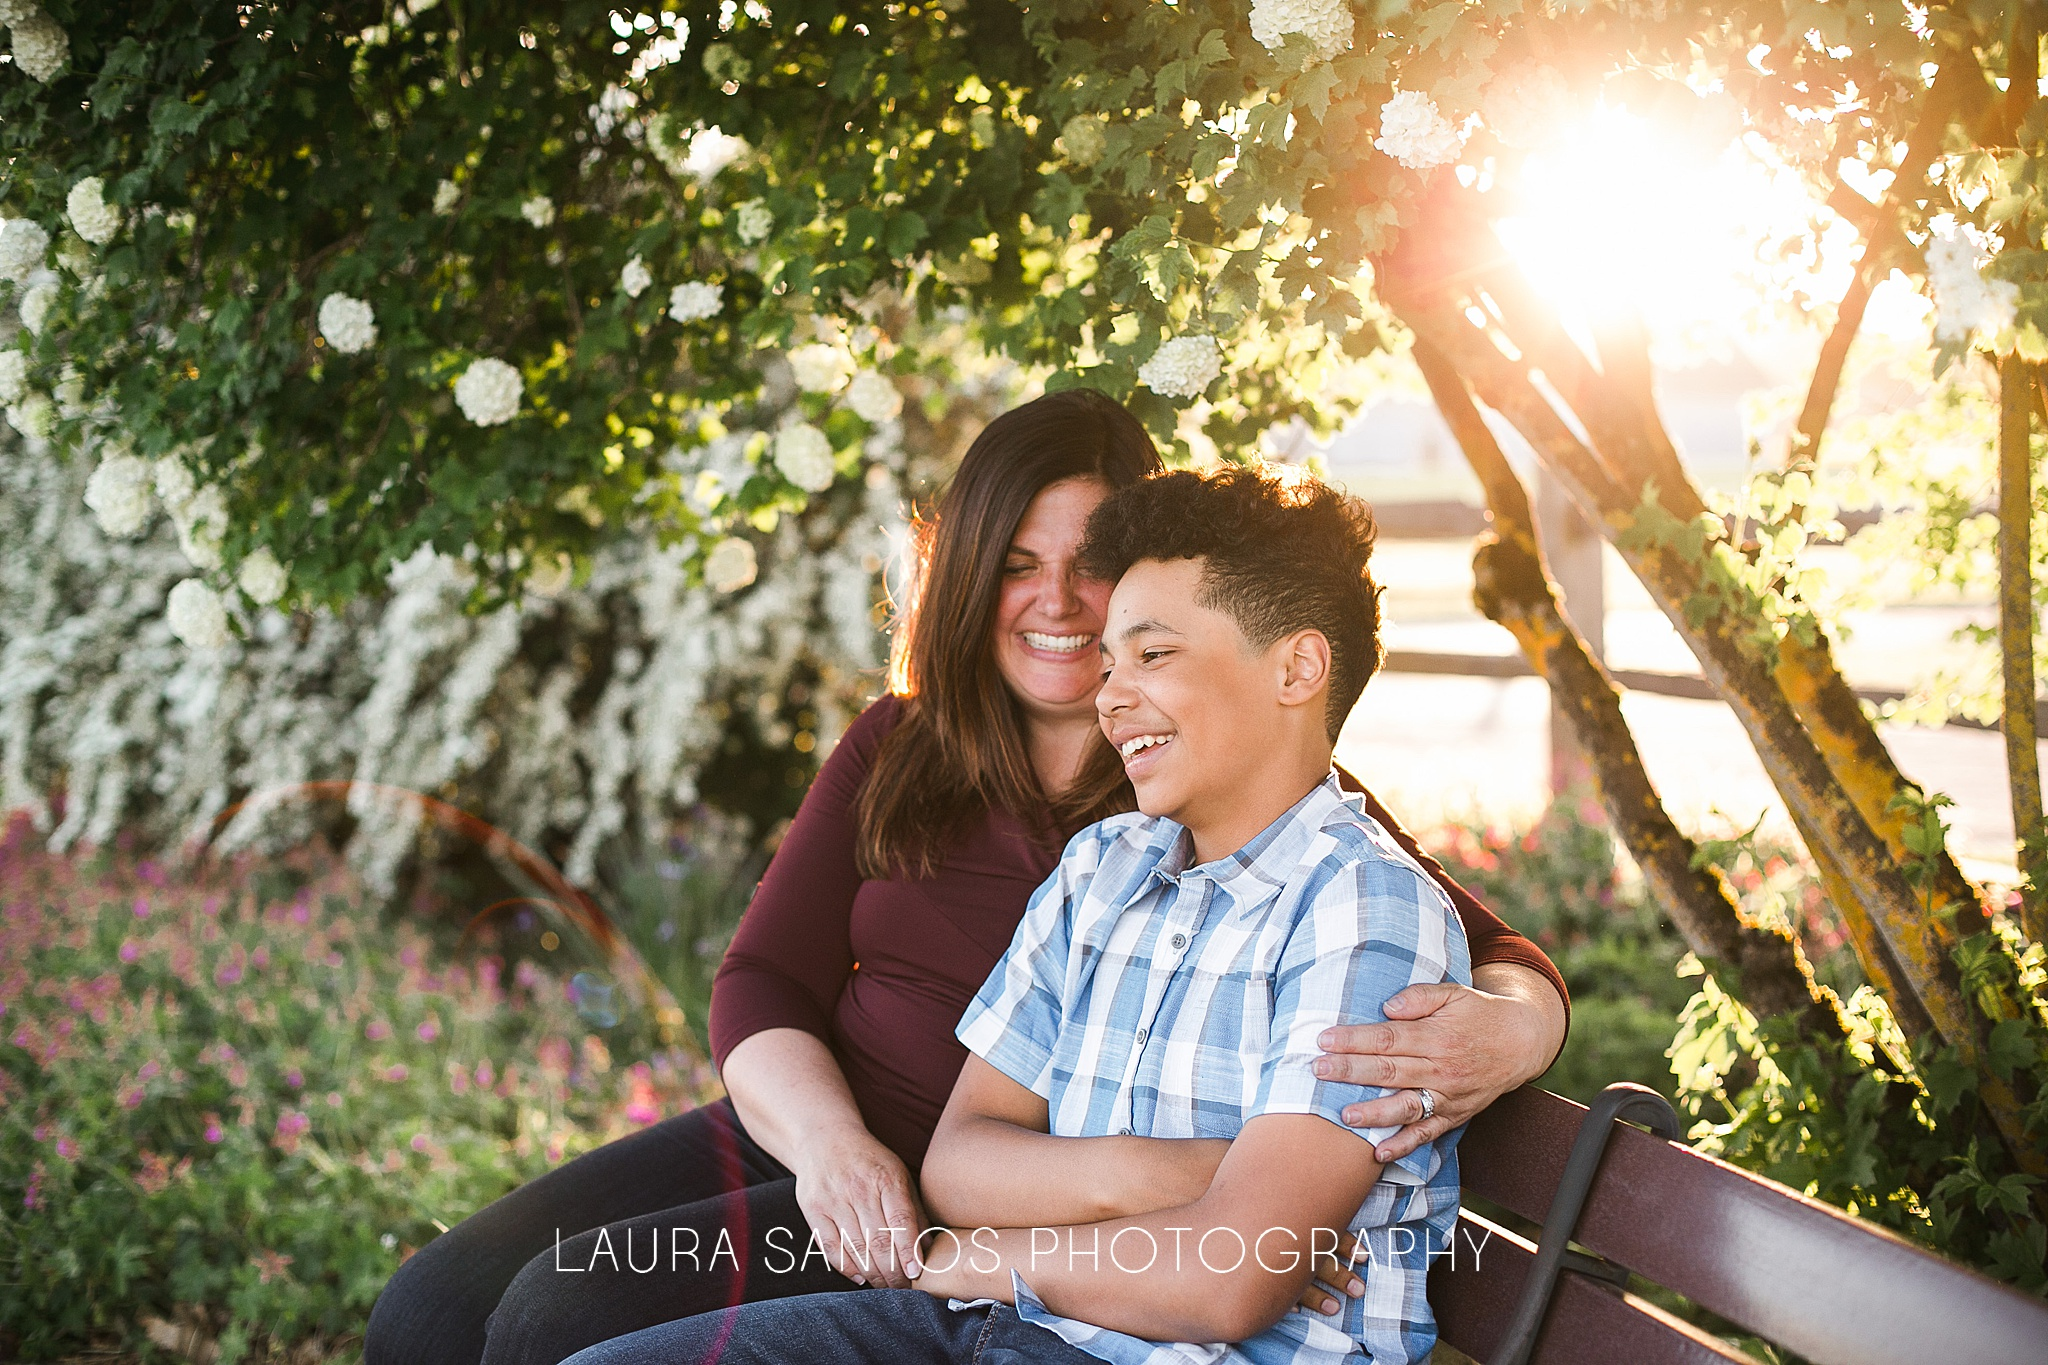 Laura Santos Photography Portland Oregon Family Photographer_0929.jpg